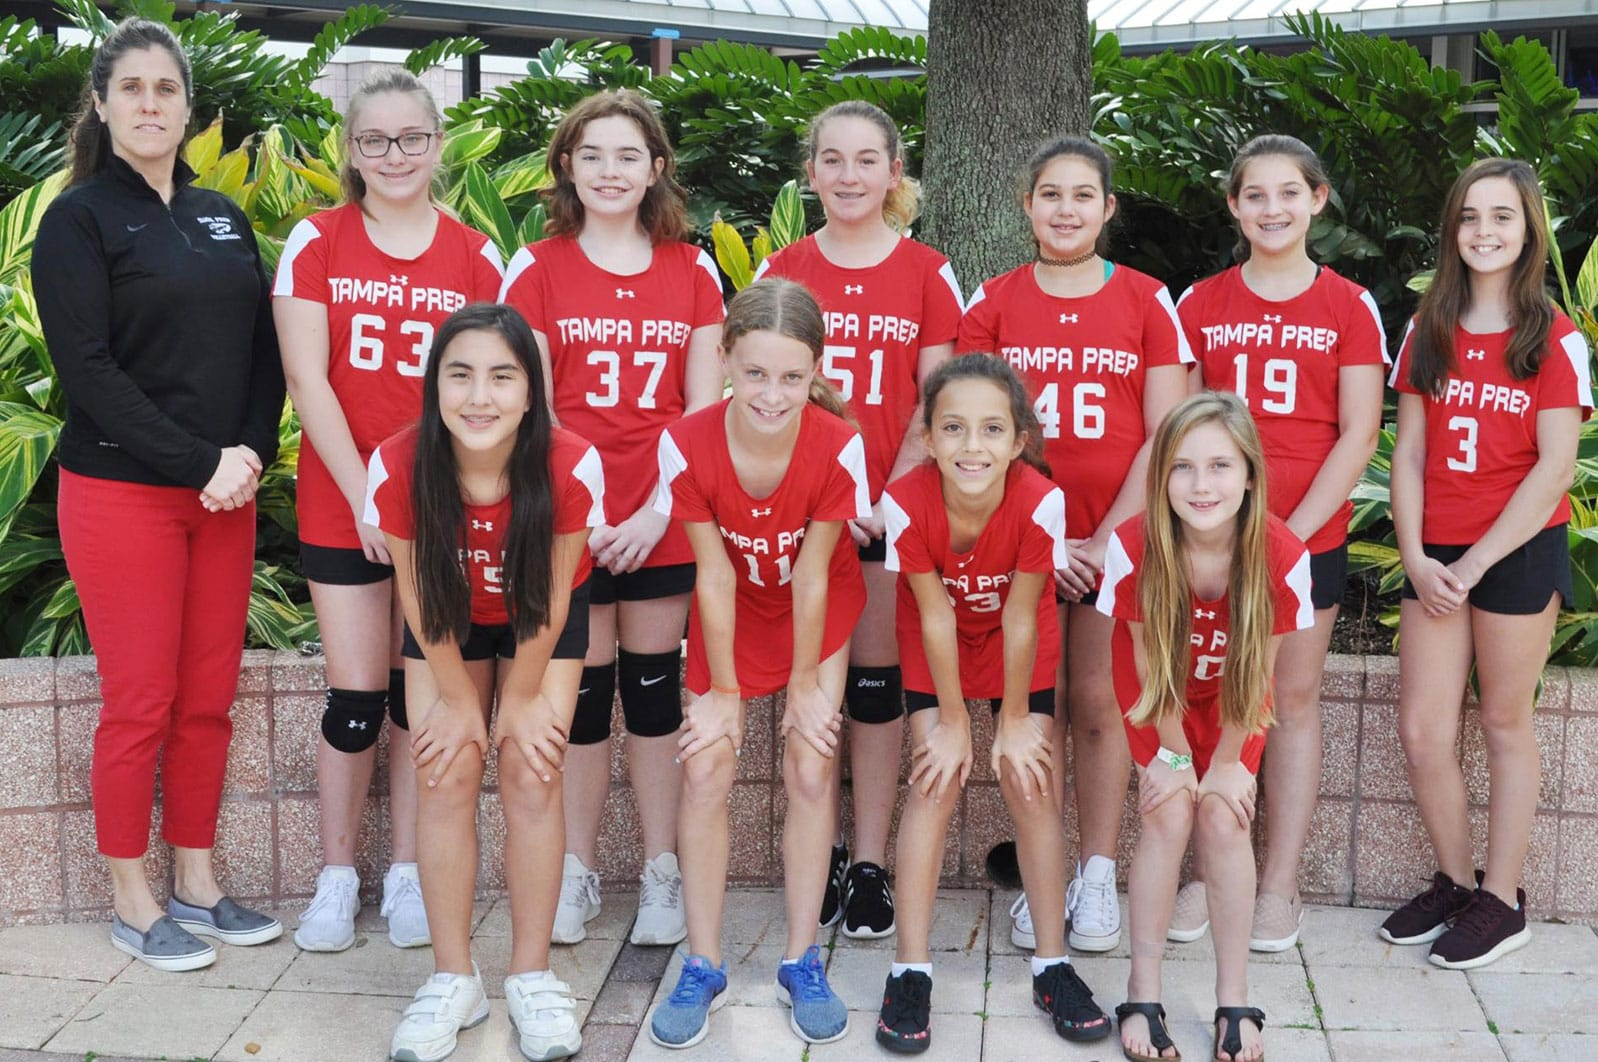 6th grade volleyball team picture